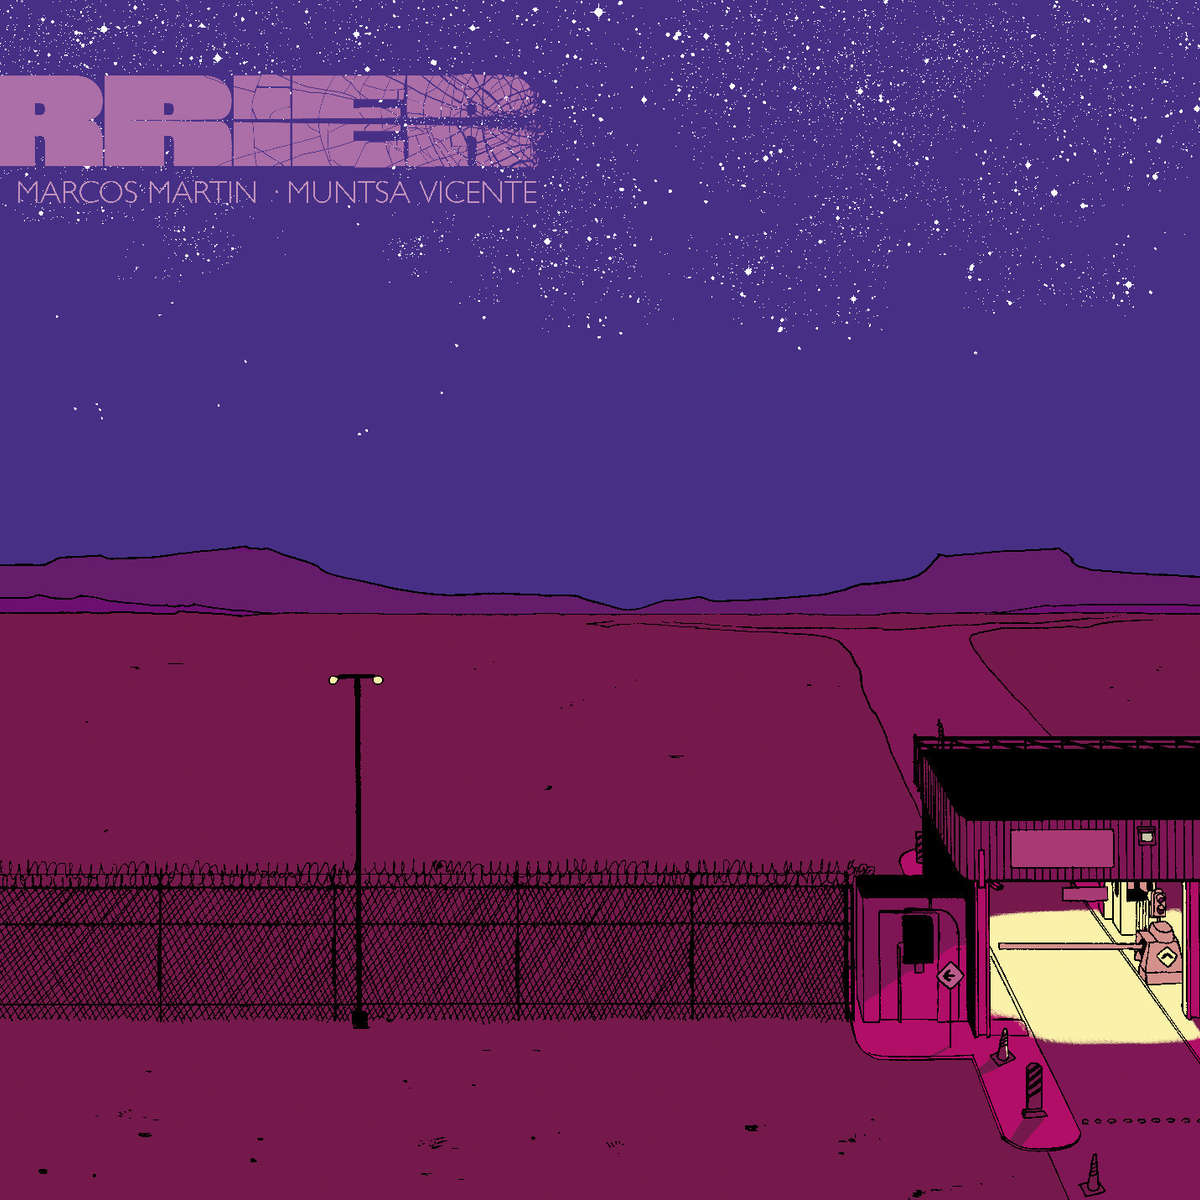 Barrier #1 Cover by Marcos Martin